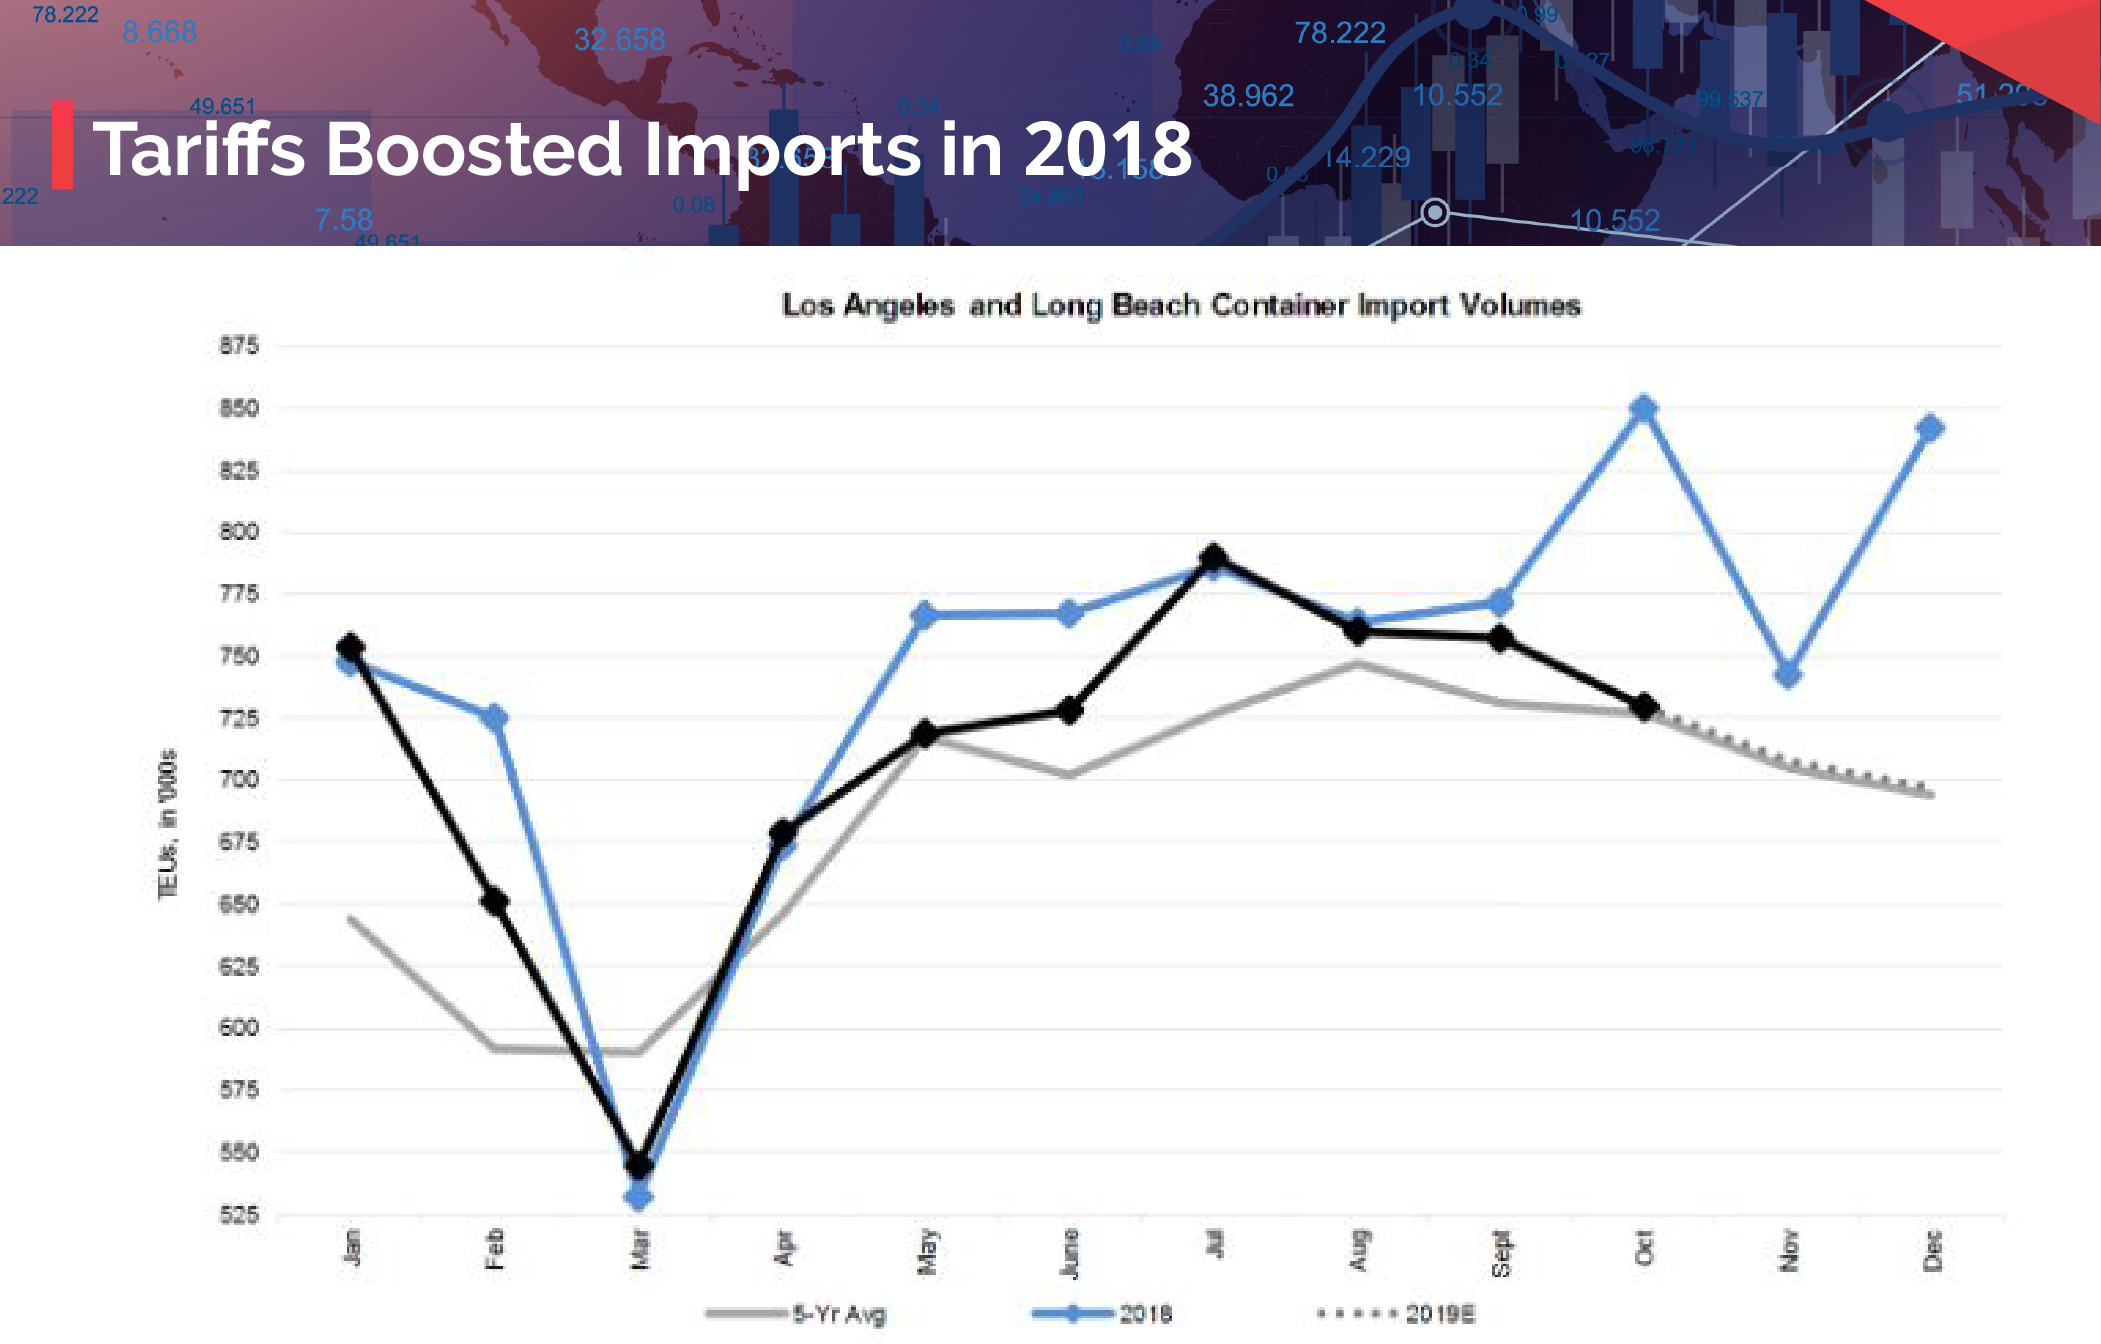 Tariffs Boosted Imports